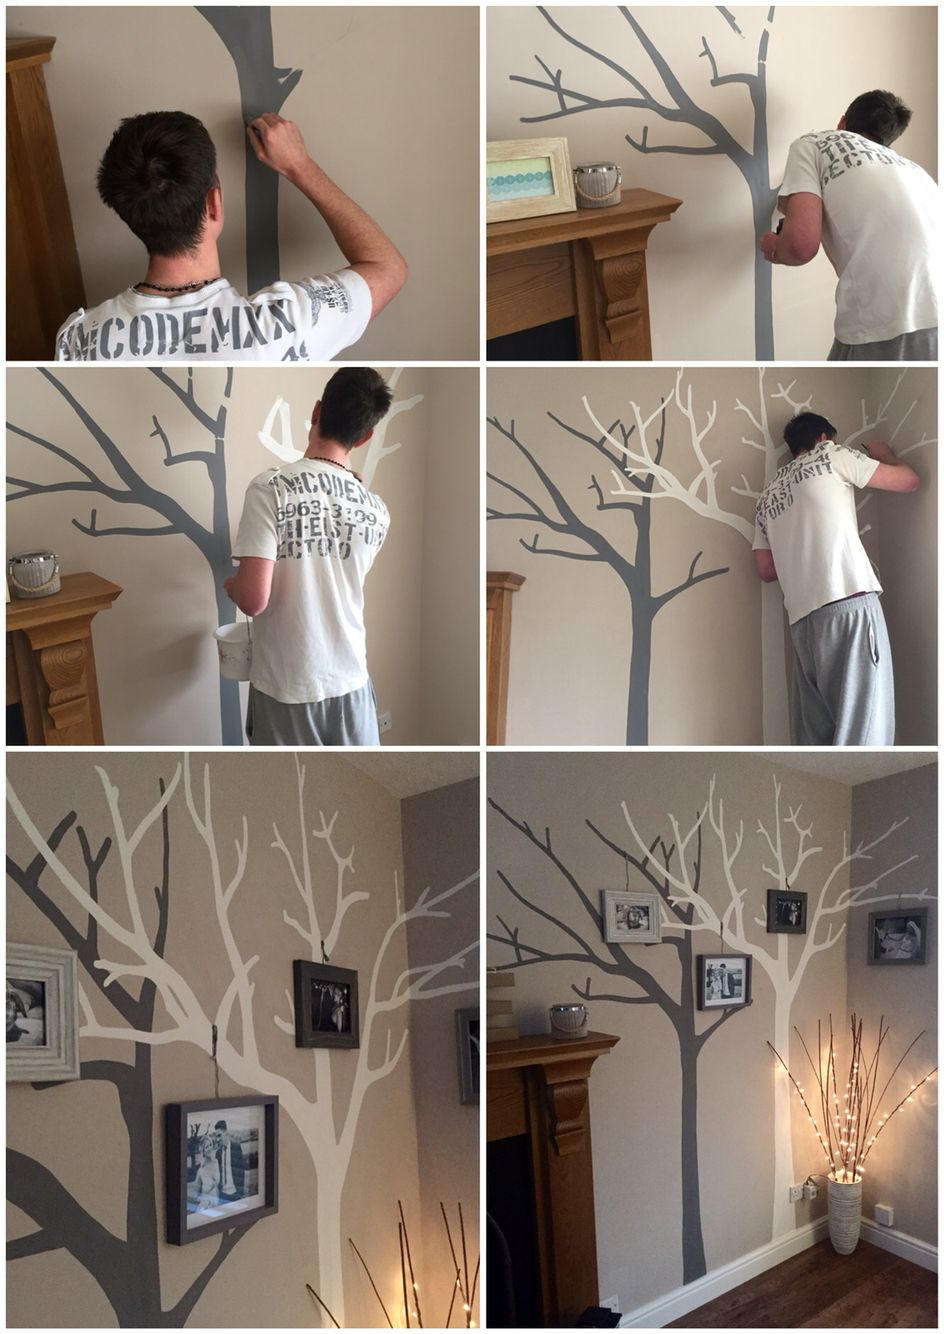 Our Hand Painted Tree Wall Art Diy Family White And Grey On Top Of Cuccino Colour Addition Photo Frames Tied To The With String